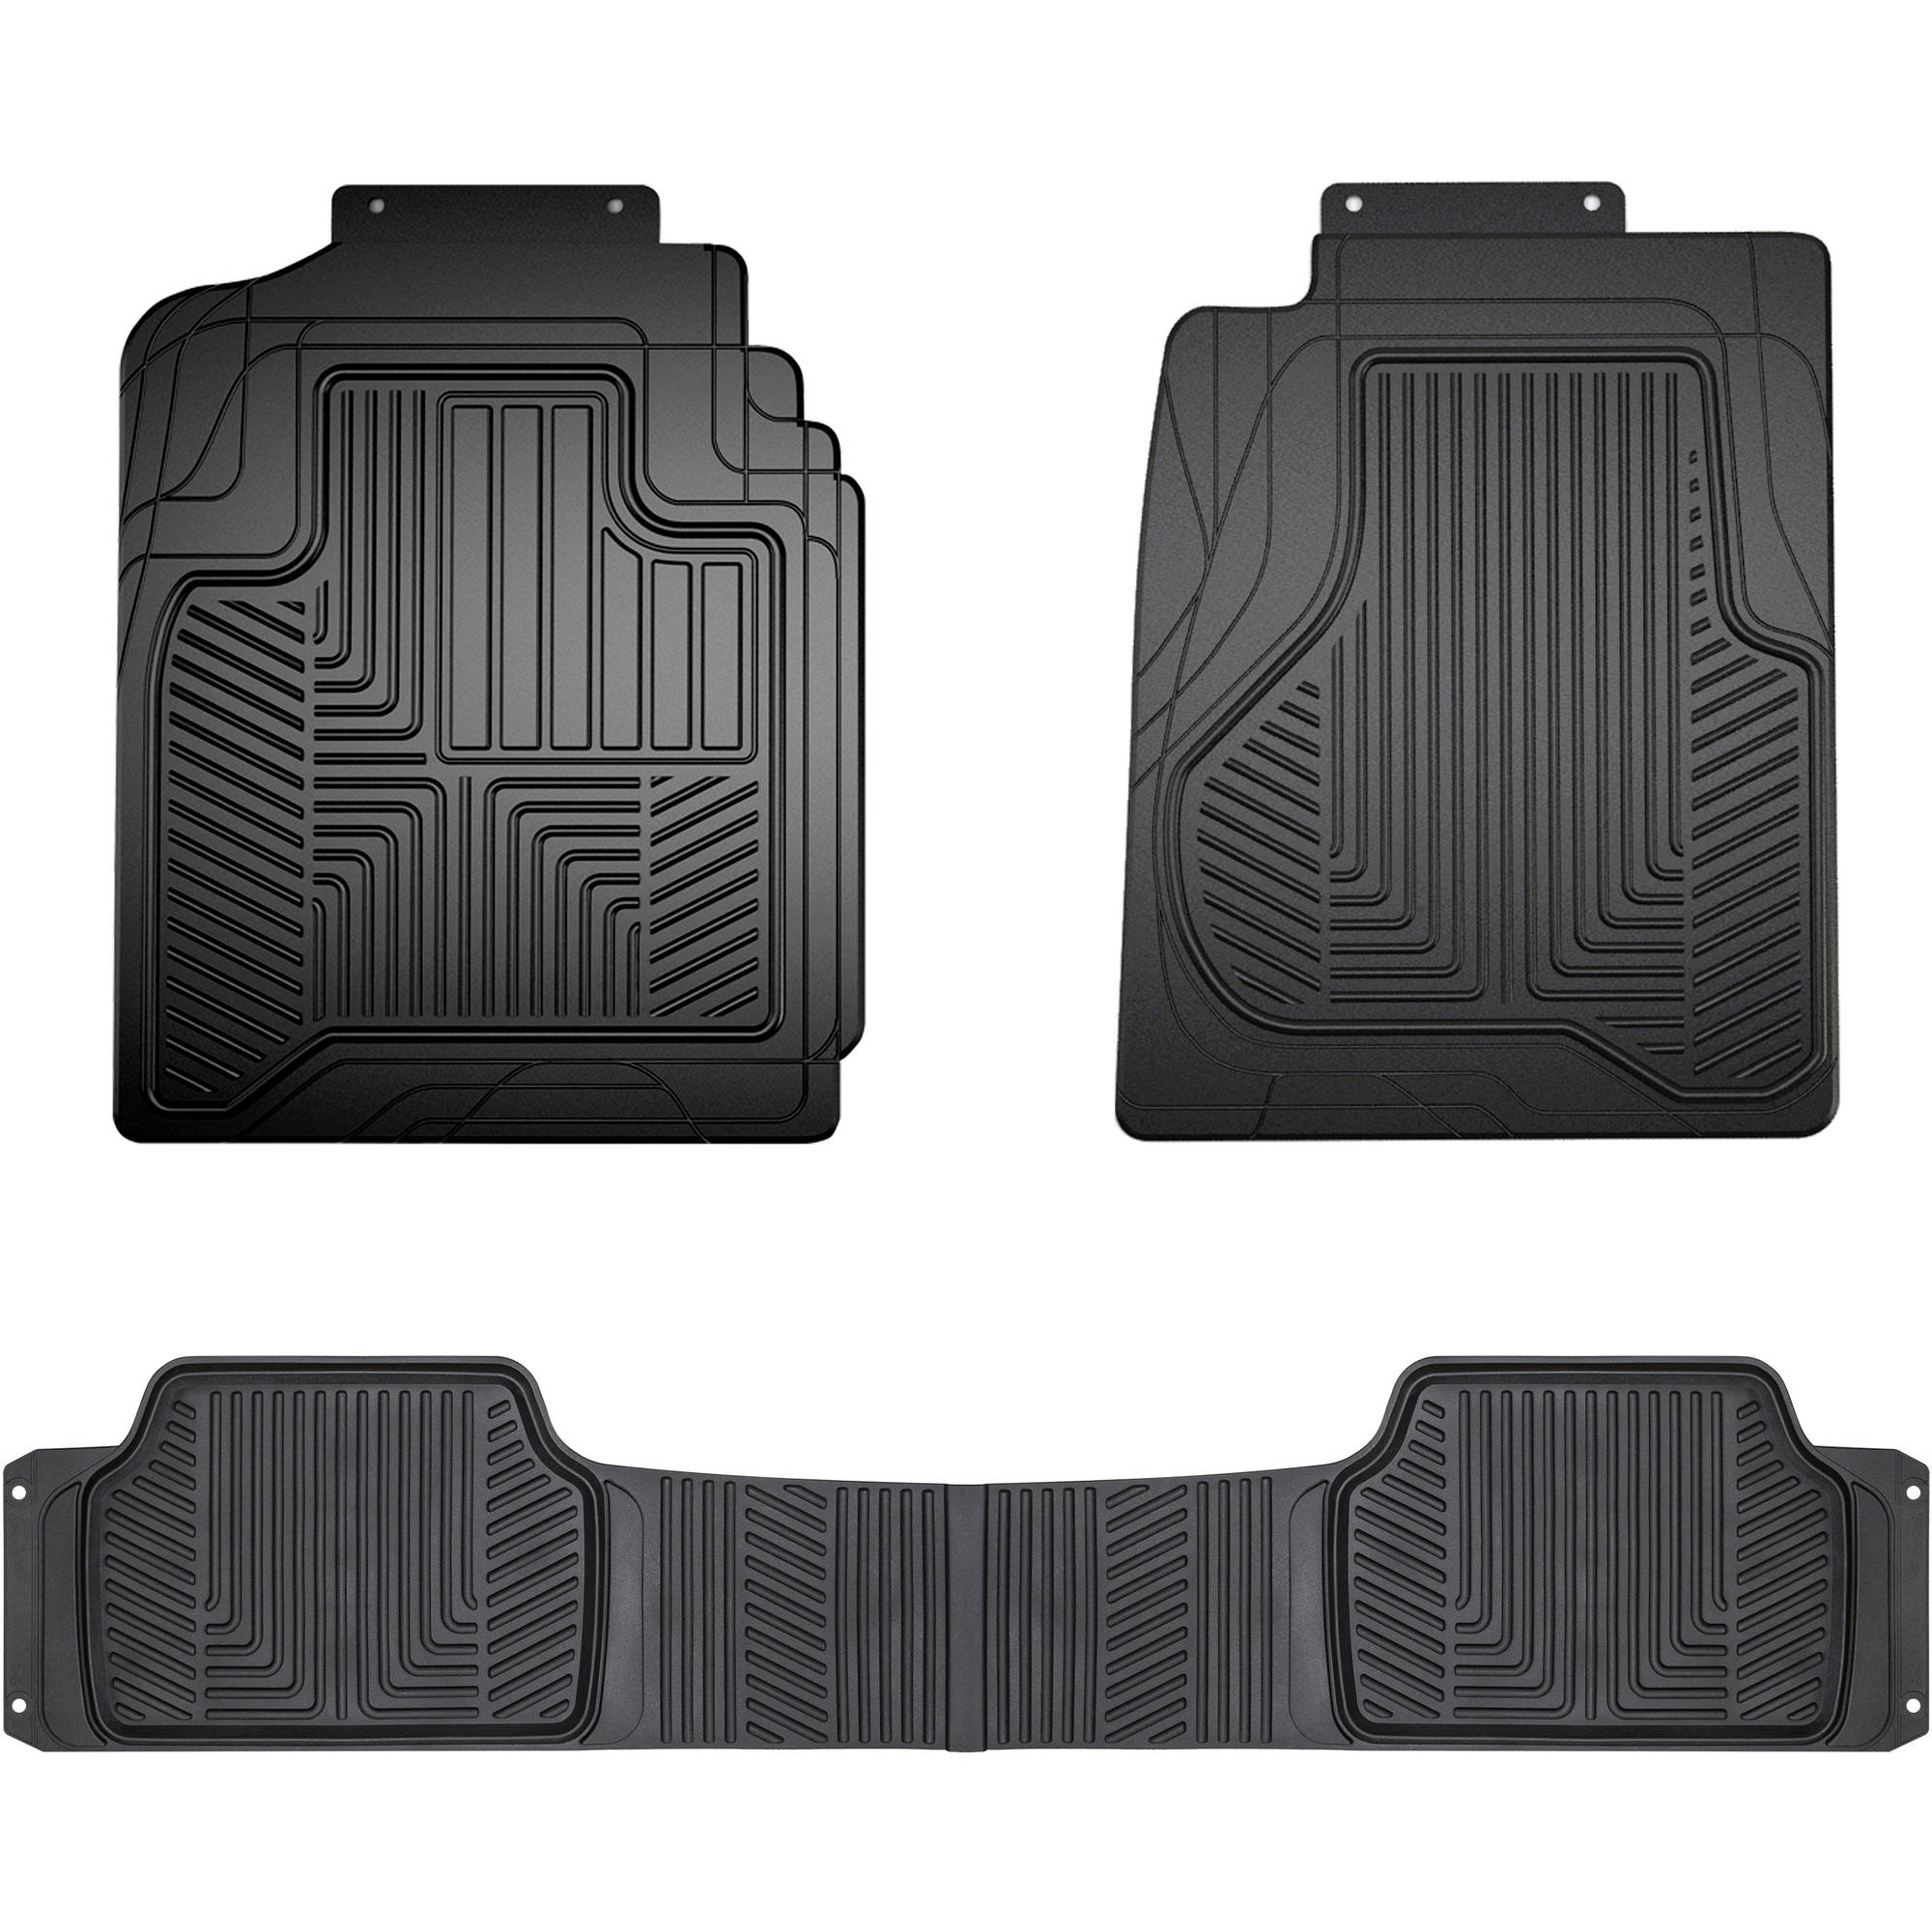 Truck Floor Mats >> Armor All Full Coverage Black Hd Rubber Truck Floor Mat Walmart Com